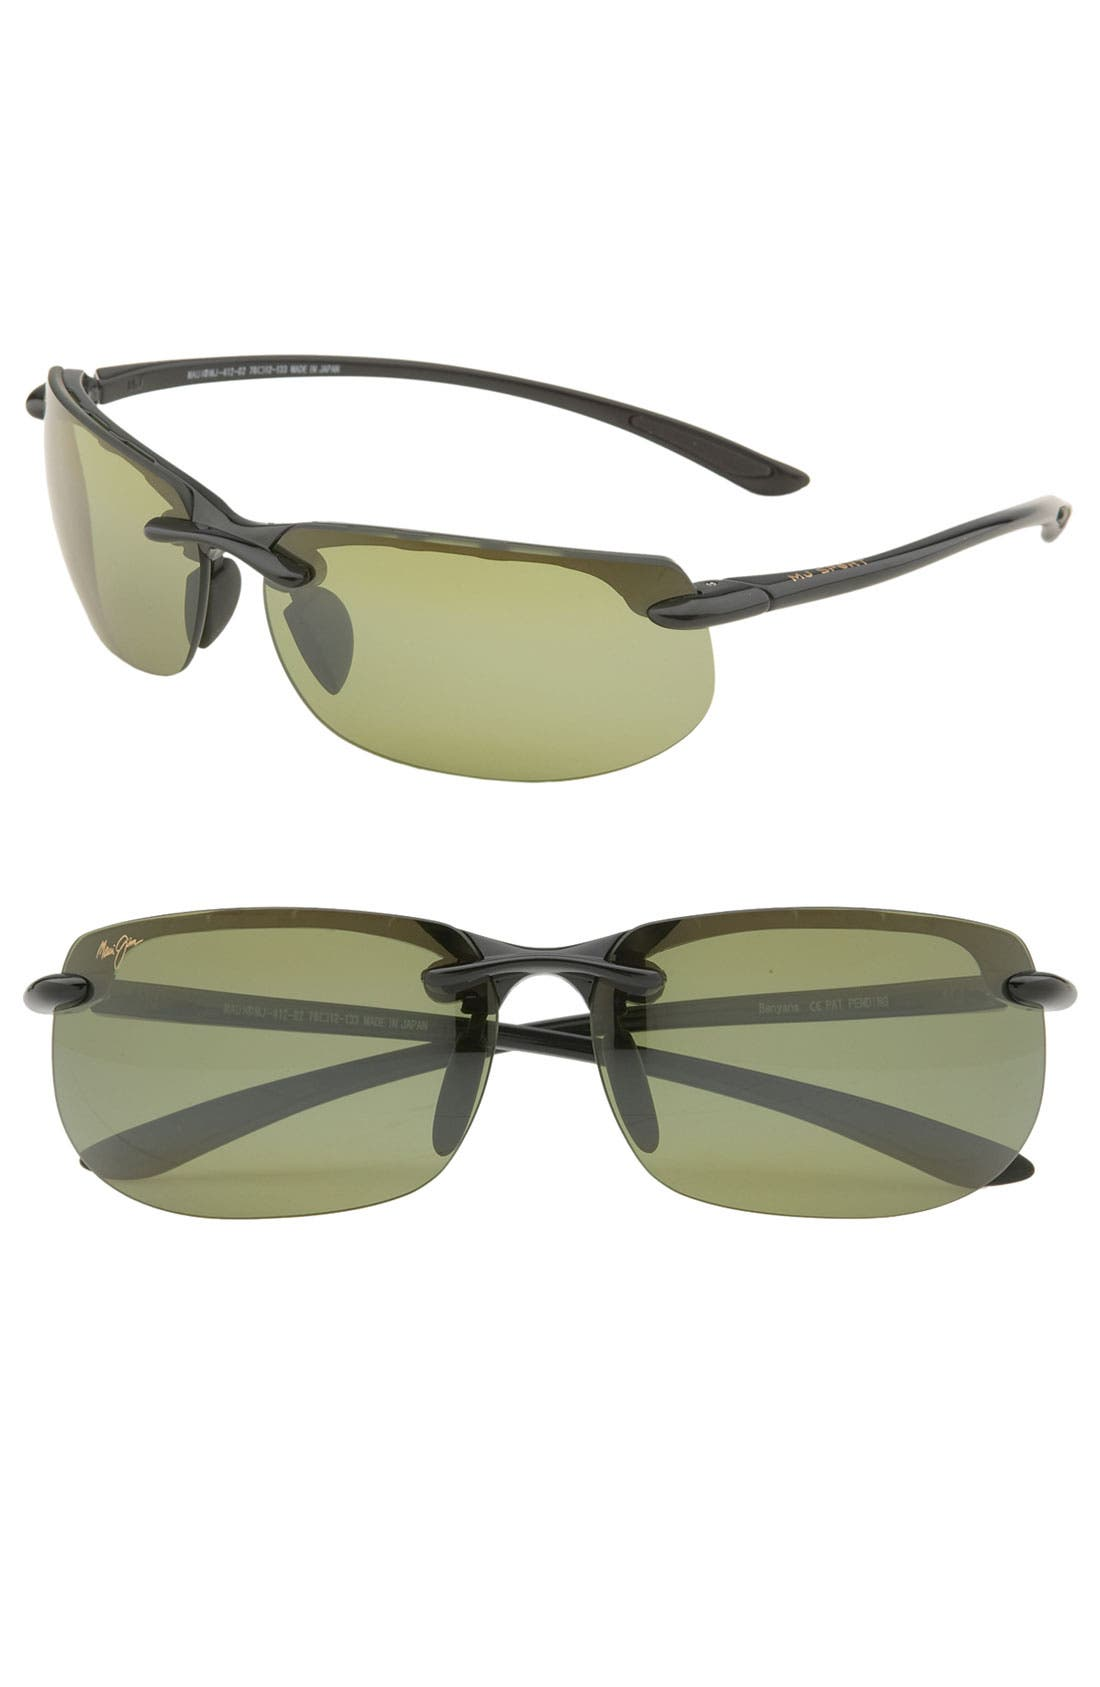 'Banyans - PolarizedPlus<sup>®</sup>2' 67mm Sunglasses,                         Main,                         color, Gloss Black / Ht Lens